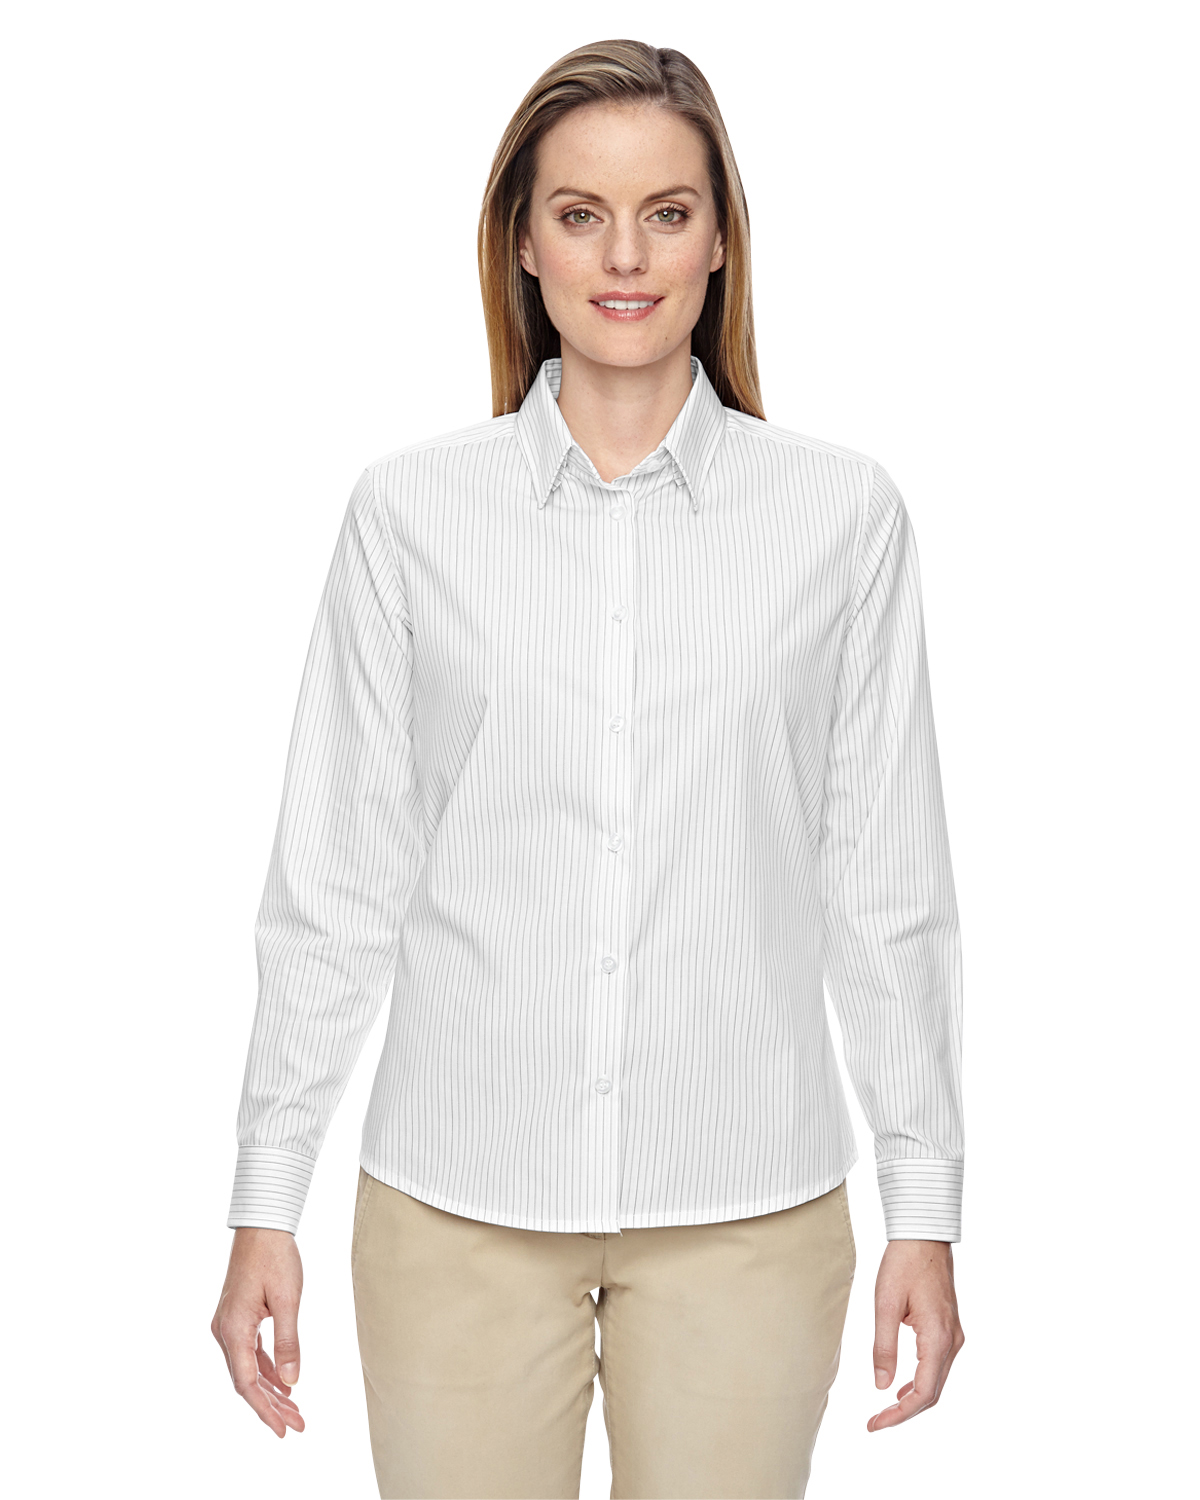 North end 77044 ladies cotton striped shirt shirtmax for Wrinkle resistant dress shirts